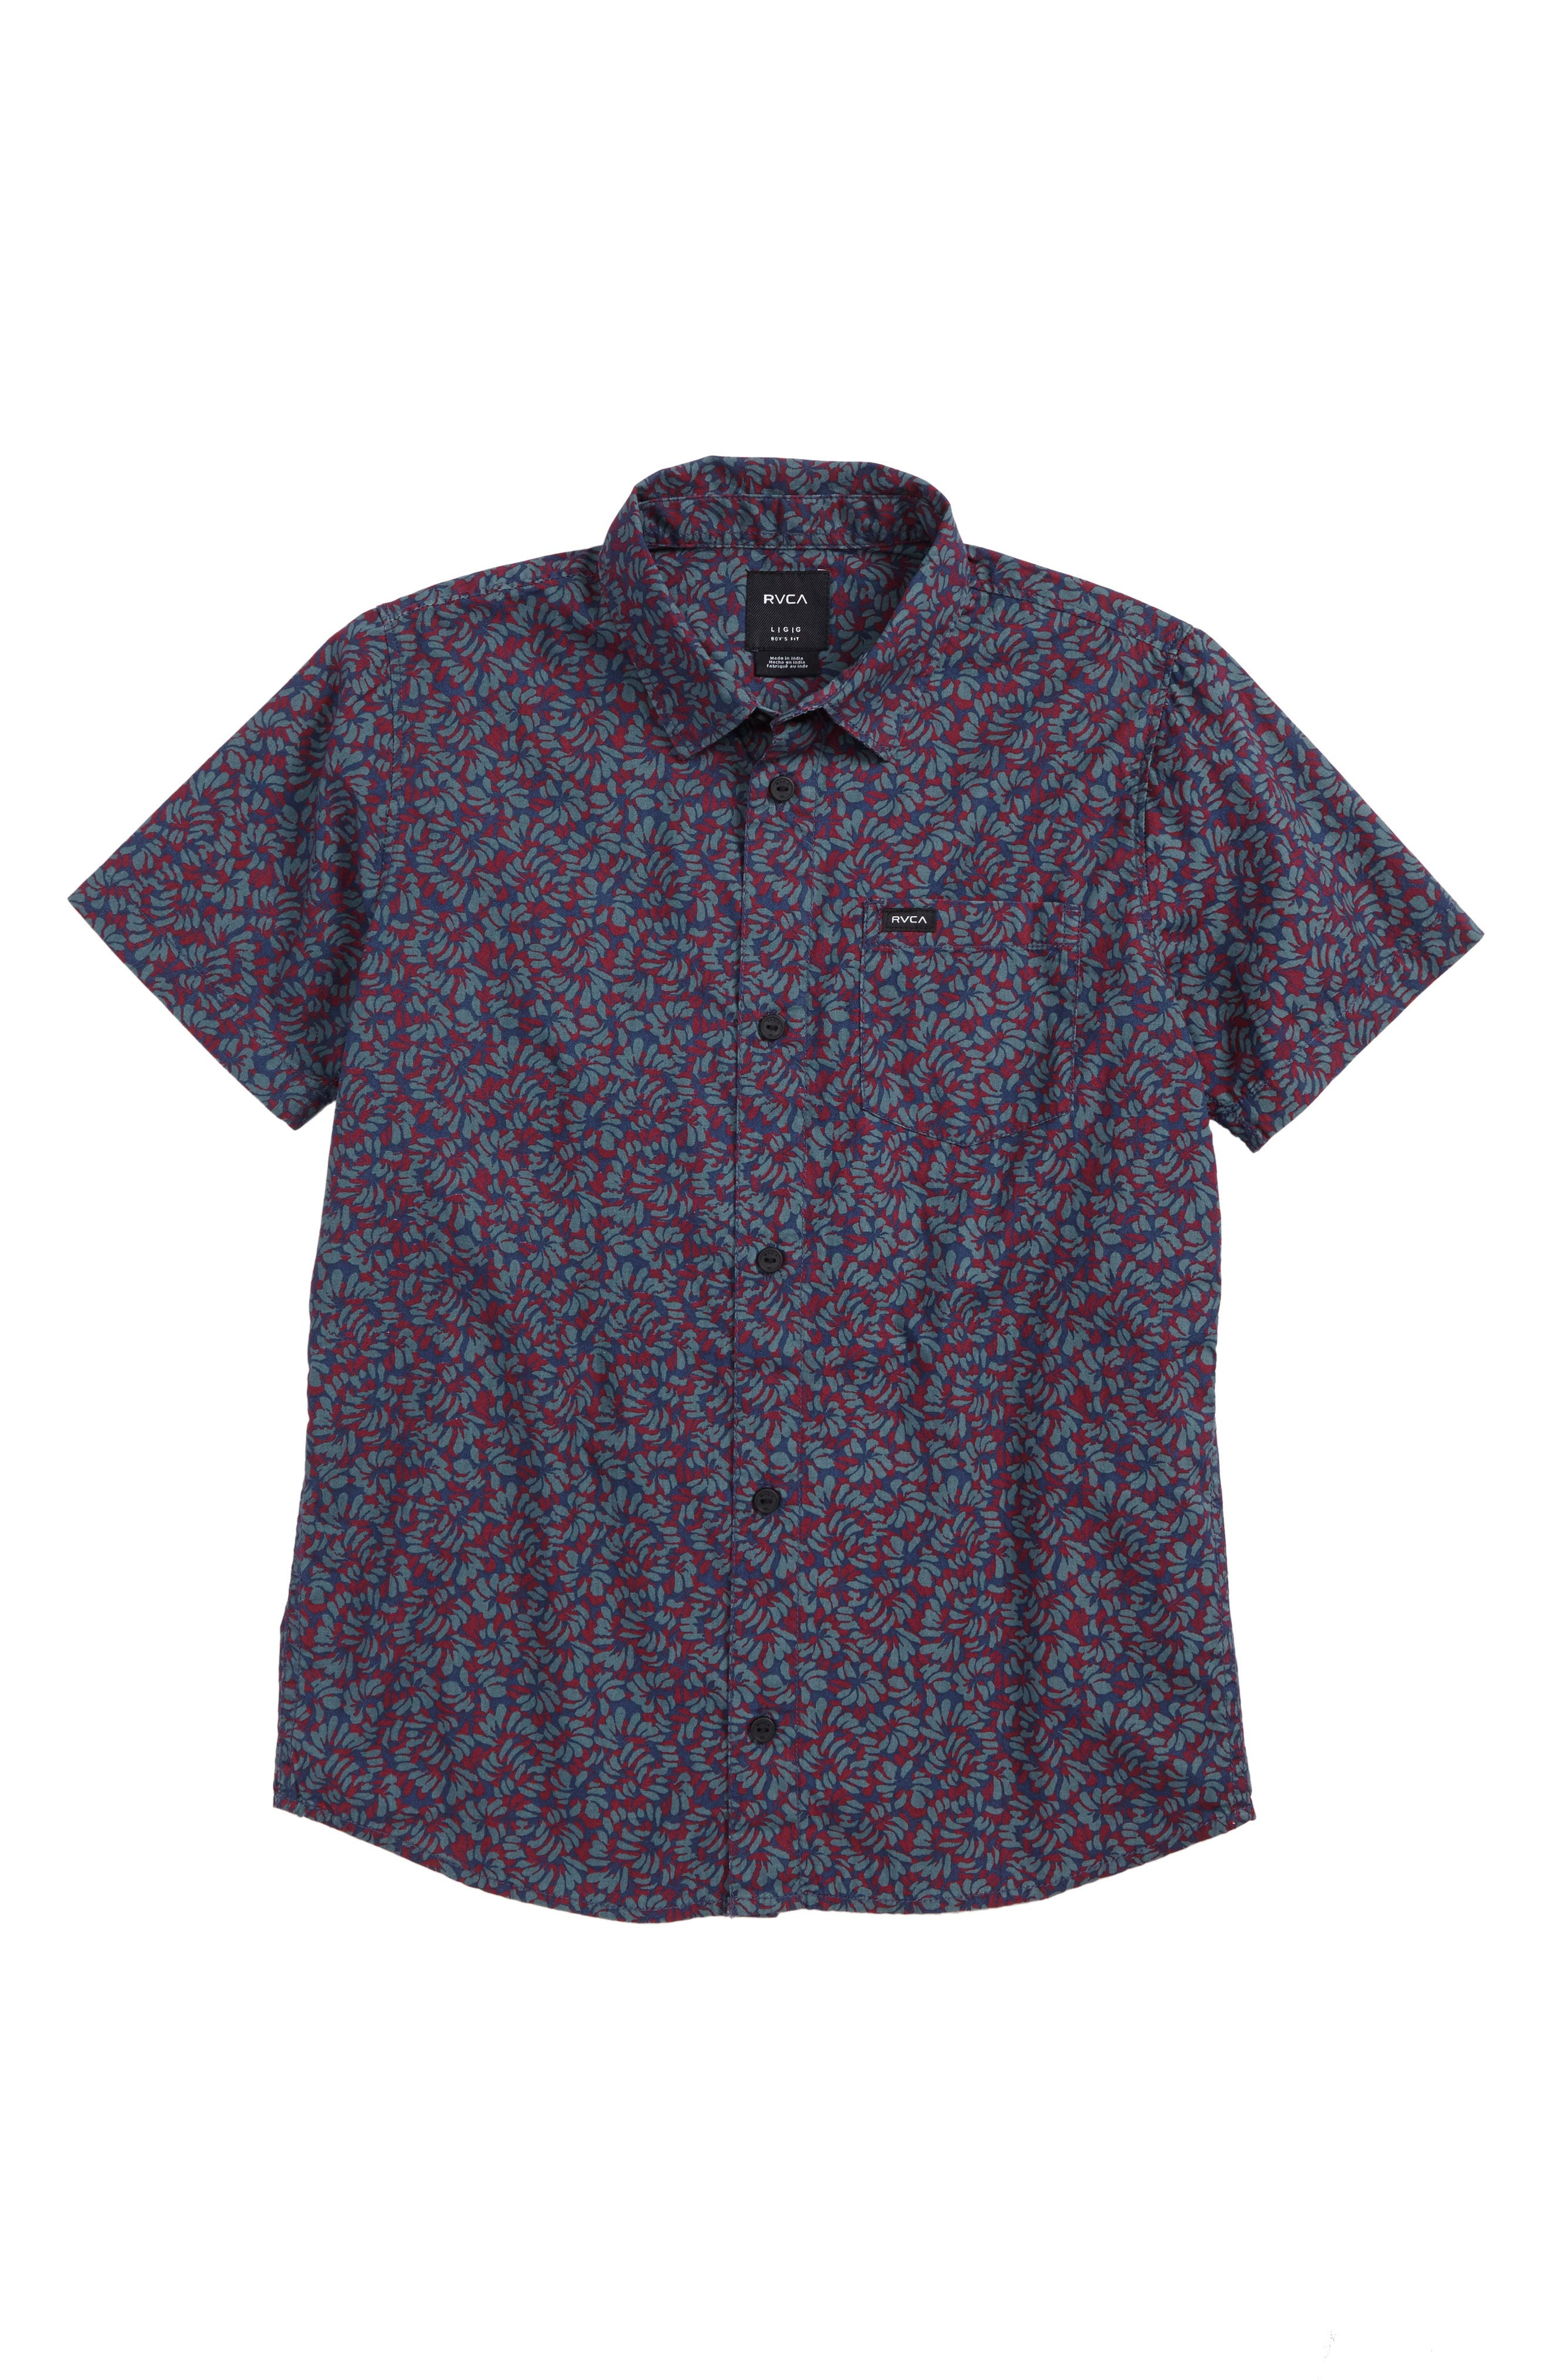 Alternate Image 1 Selected - RVCA Brong Floral Woven Shirt (Big Boys)